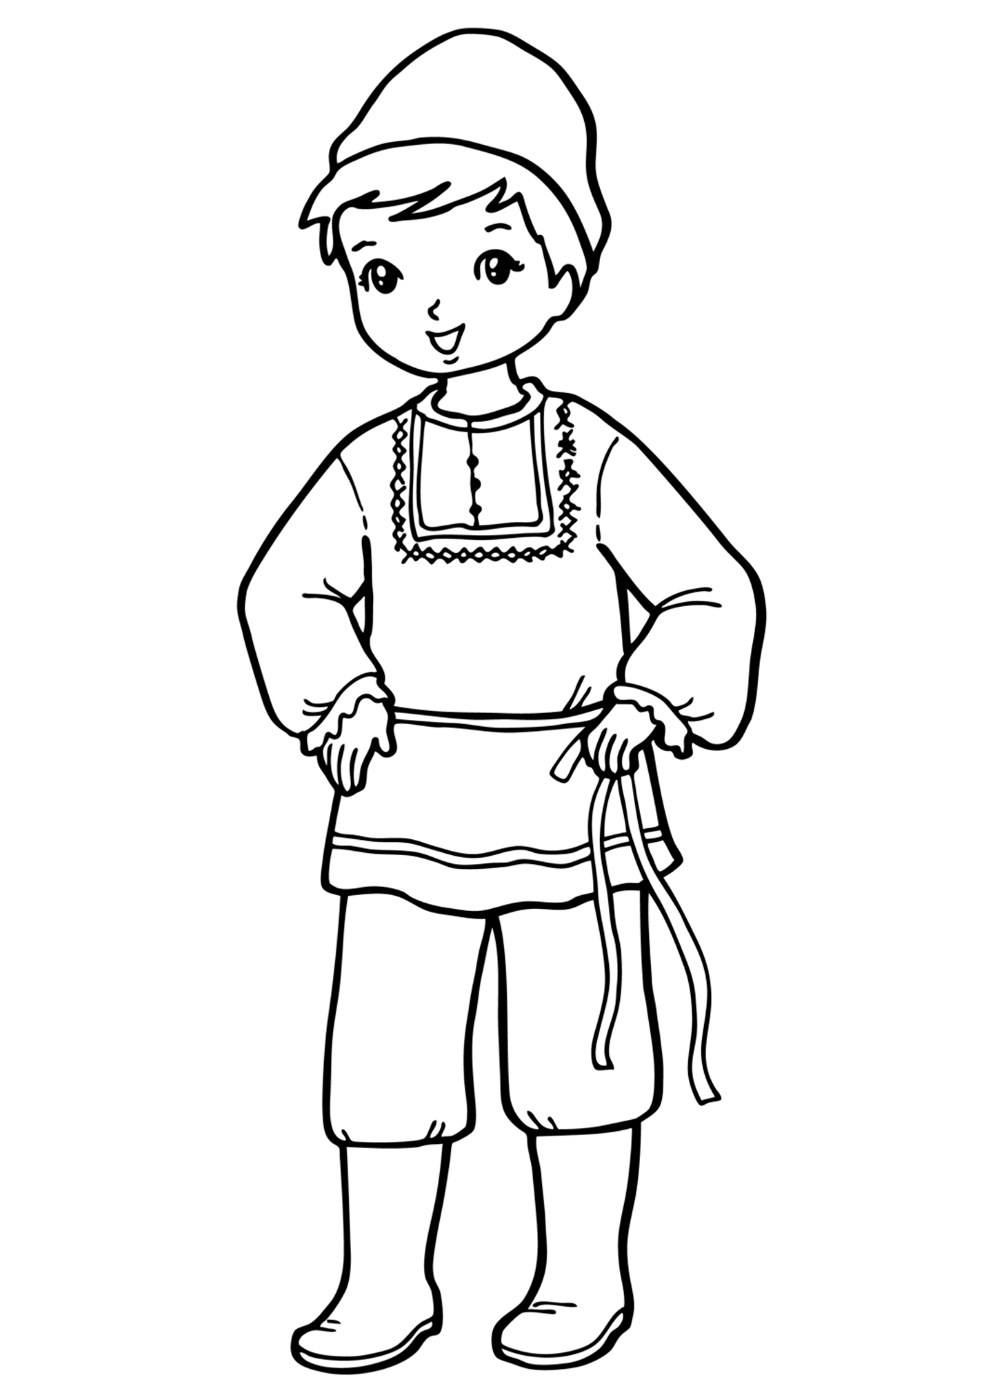 Coloring page - The boy in national costume